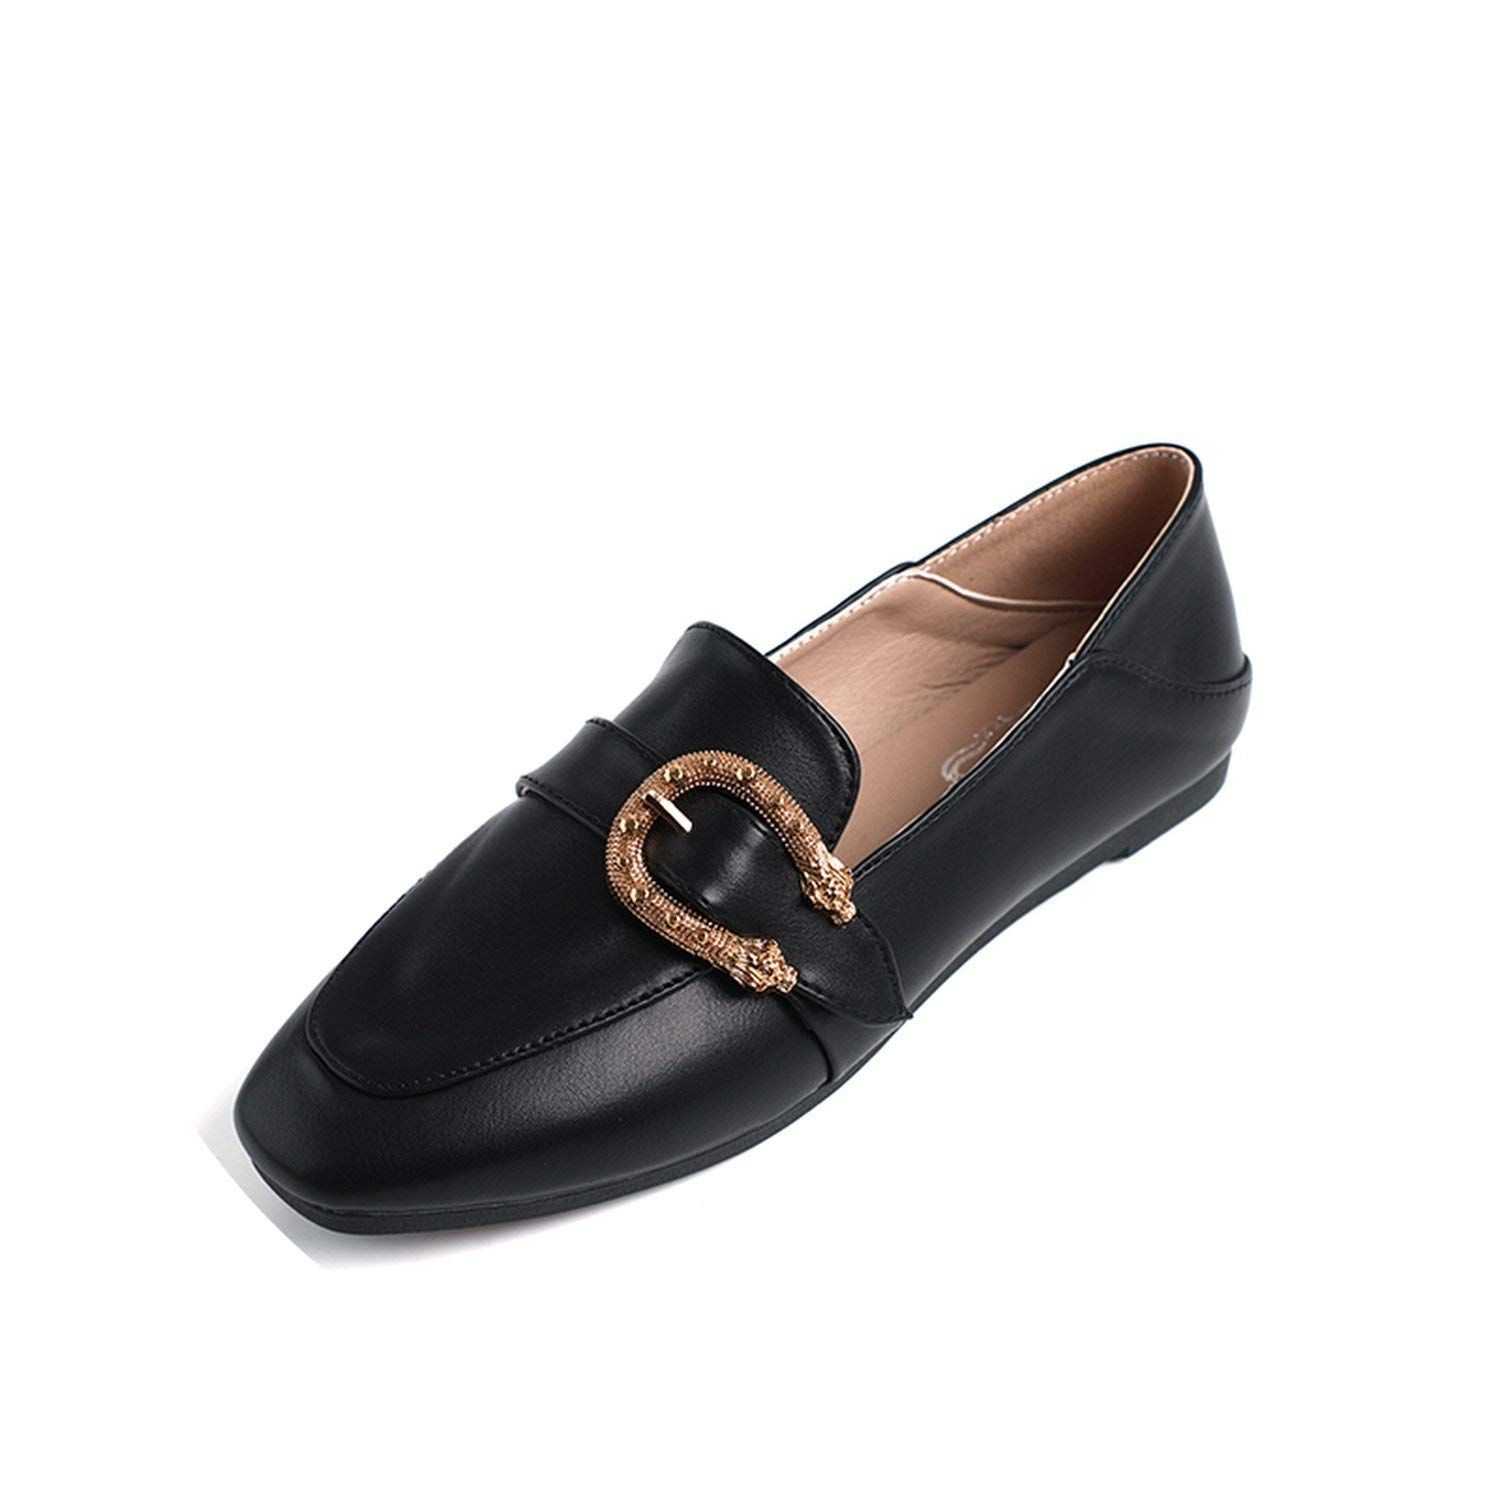 a62e62bbd19 Get Quotations · Kingwhisht Loafers   Slip-Ons Loafers Square Toe Slip on  Shoes Buckle Loafer Bead Metal